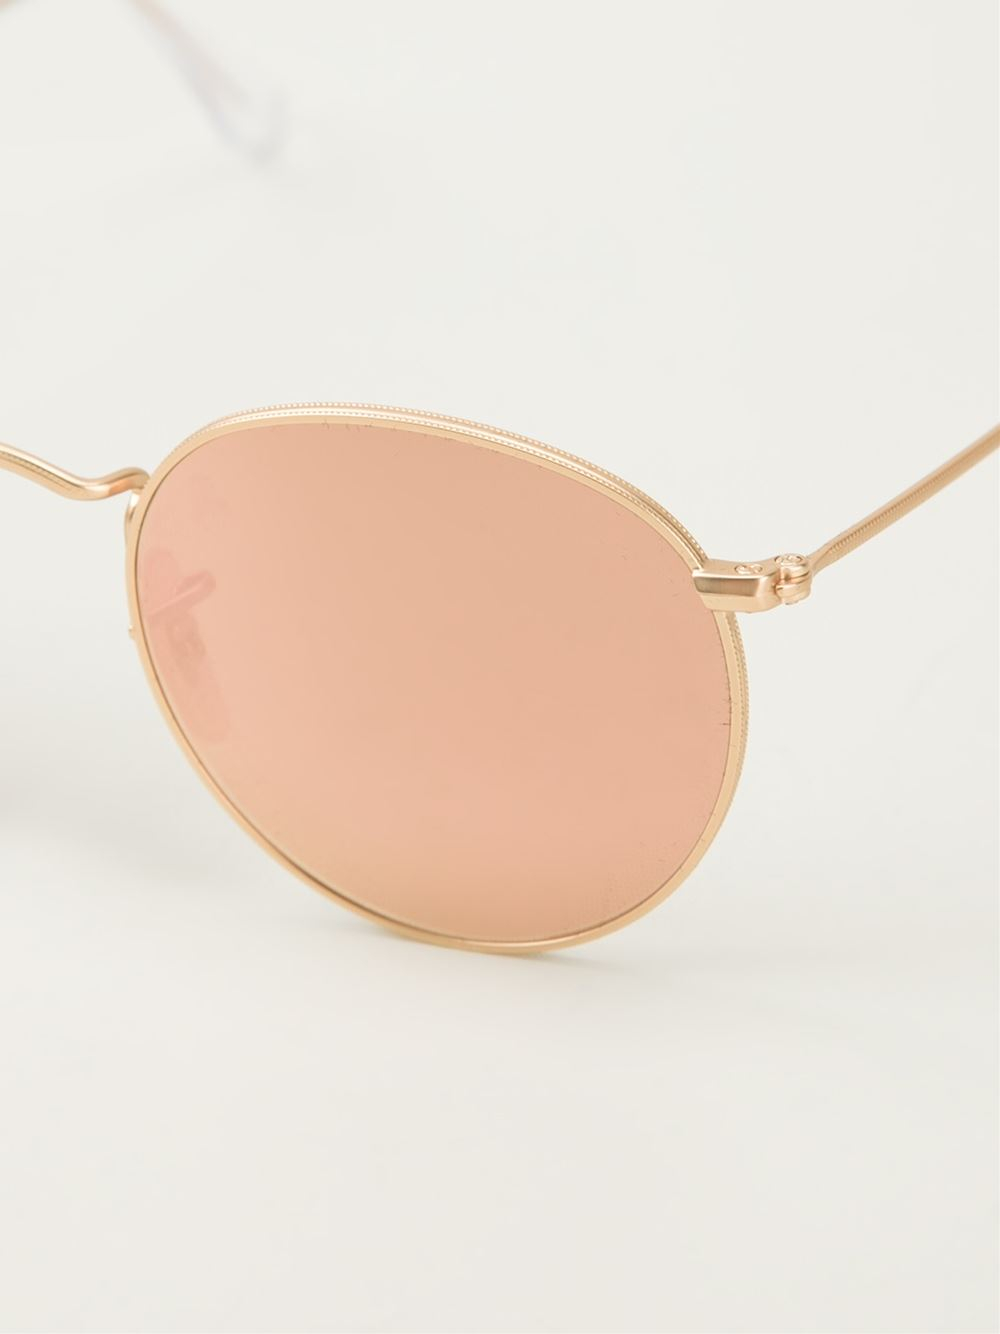 Ray Ban Round Frame Sunglasses : Ray-ban Round Frame Sunglasses in Pink for Men (metallic ...